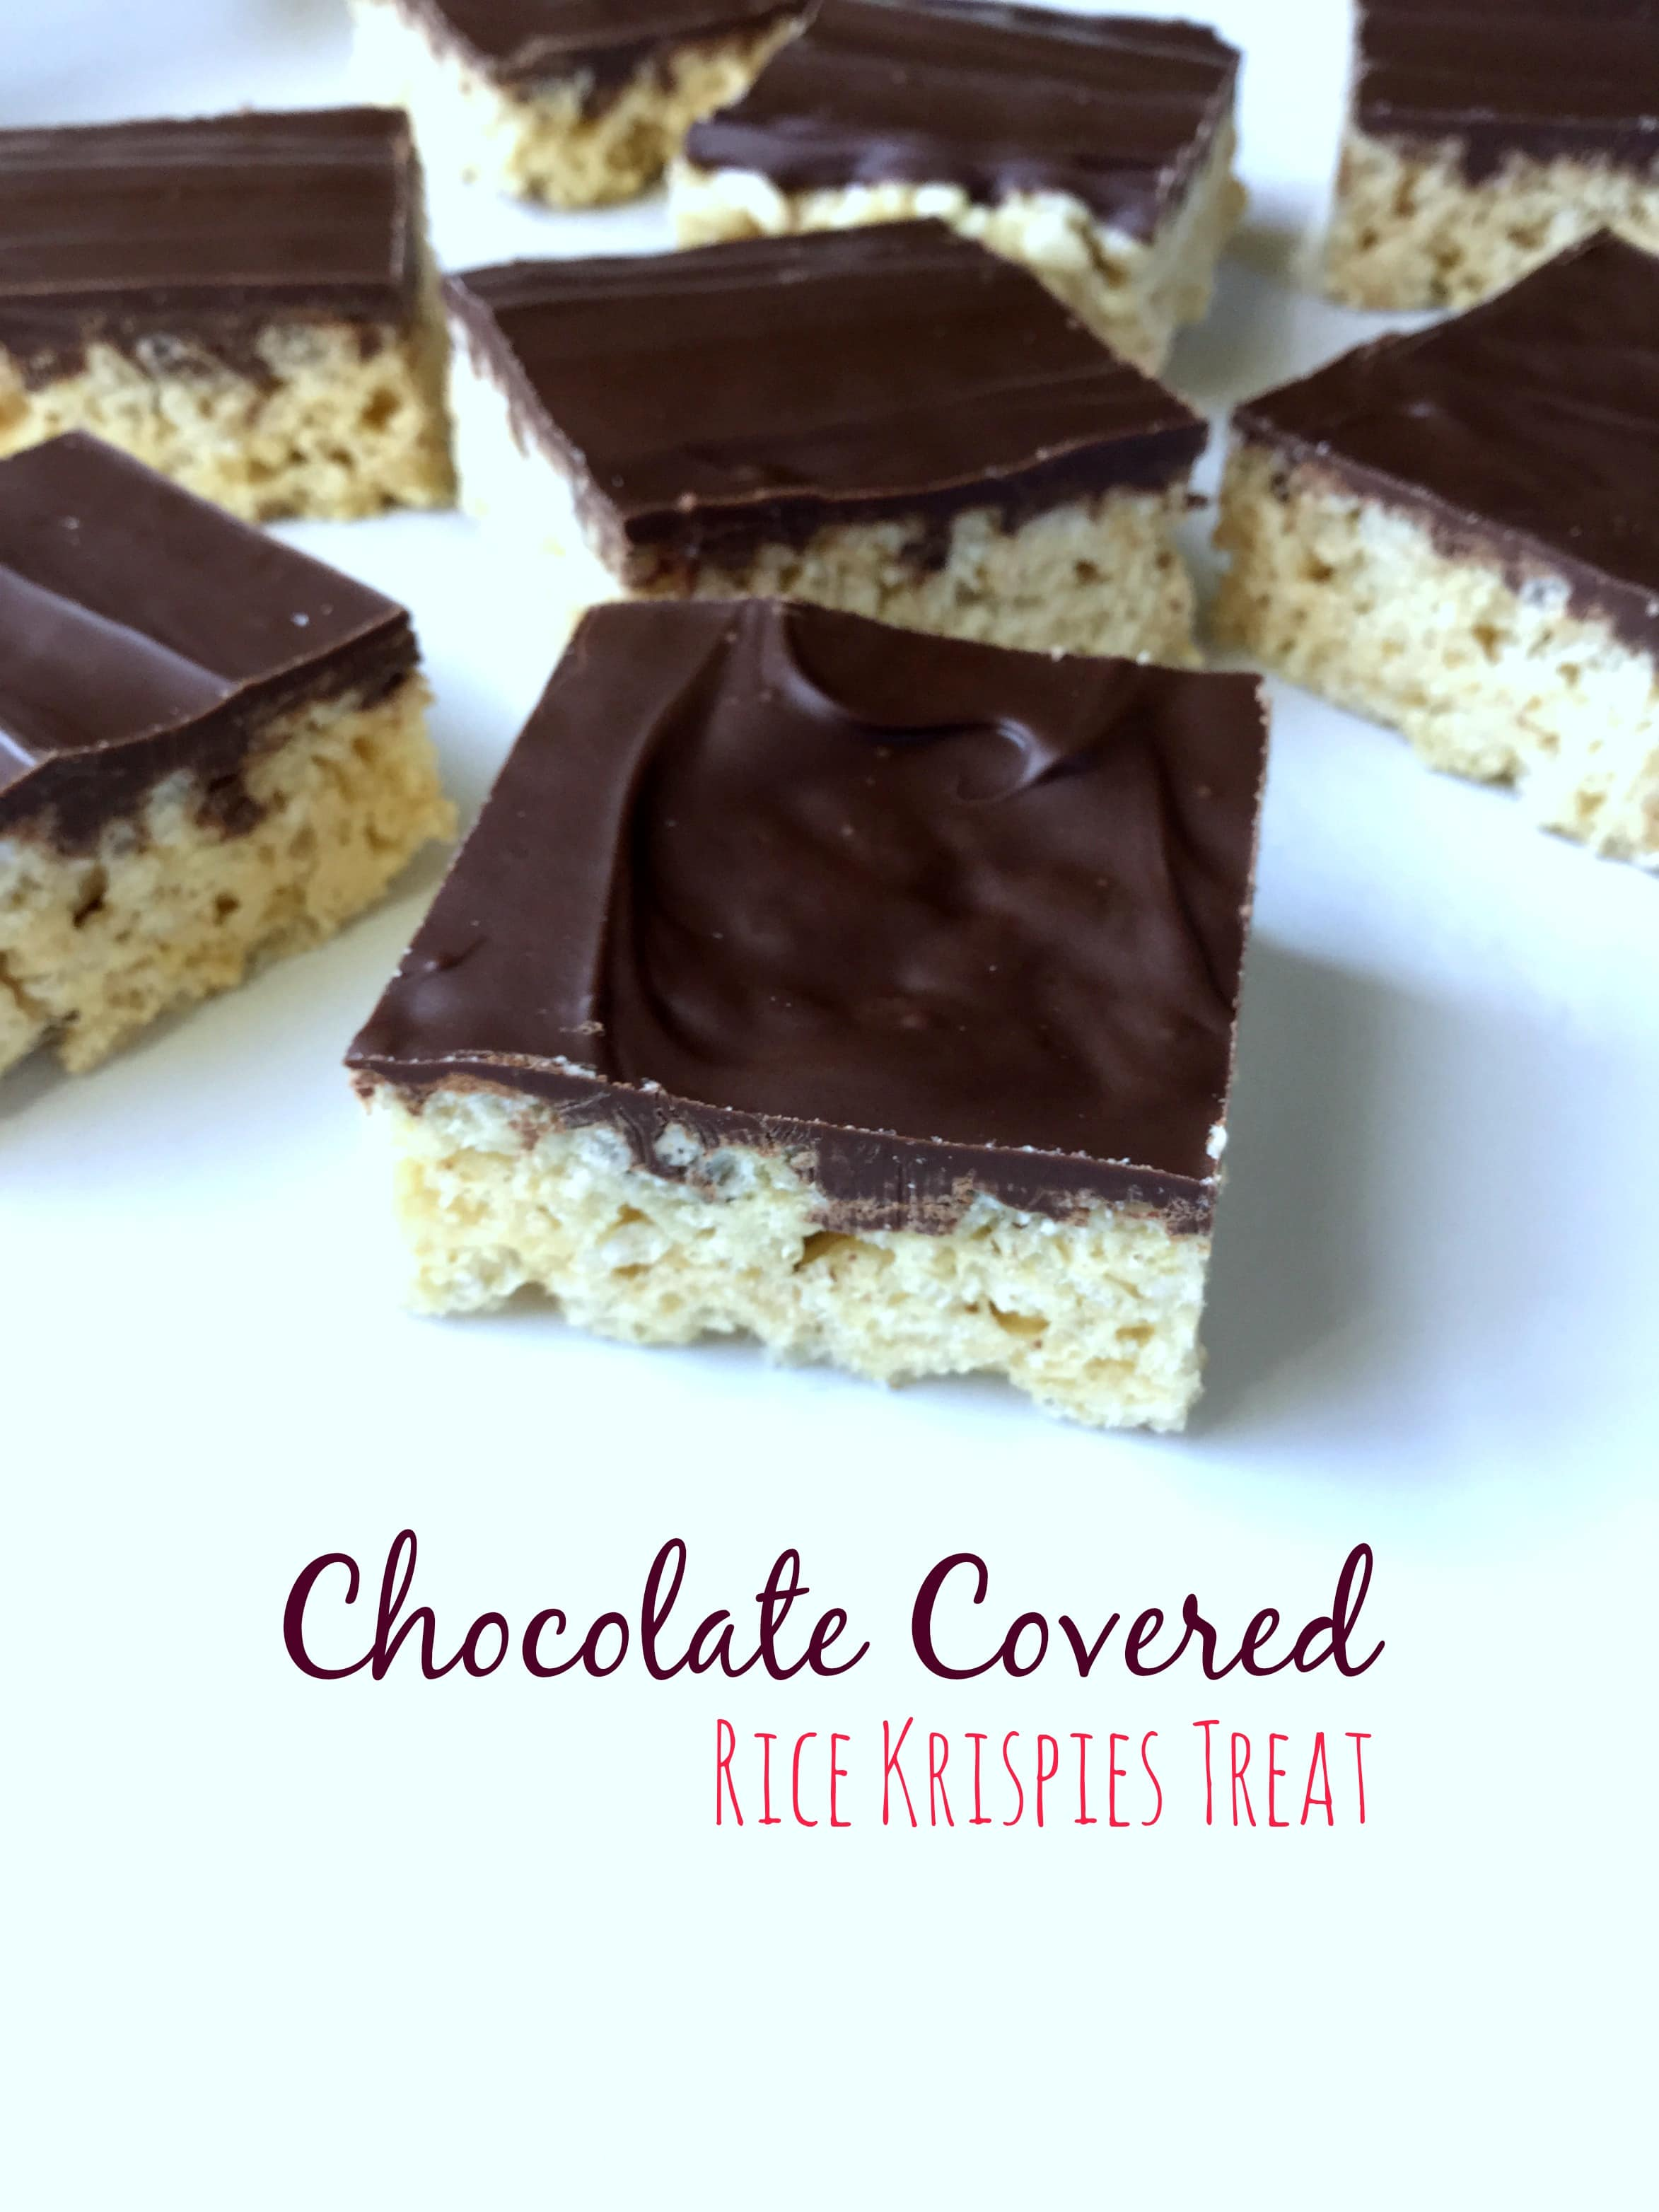 These chocolate covered rice krispies are a great easy treat for everyone!